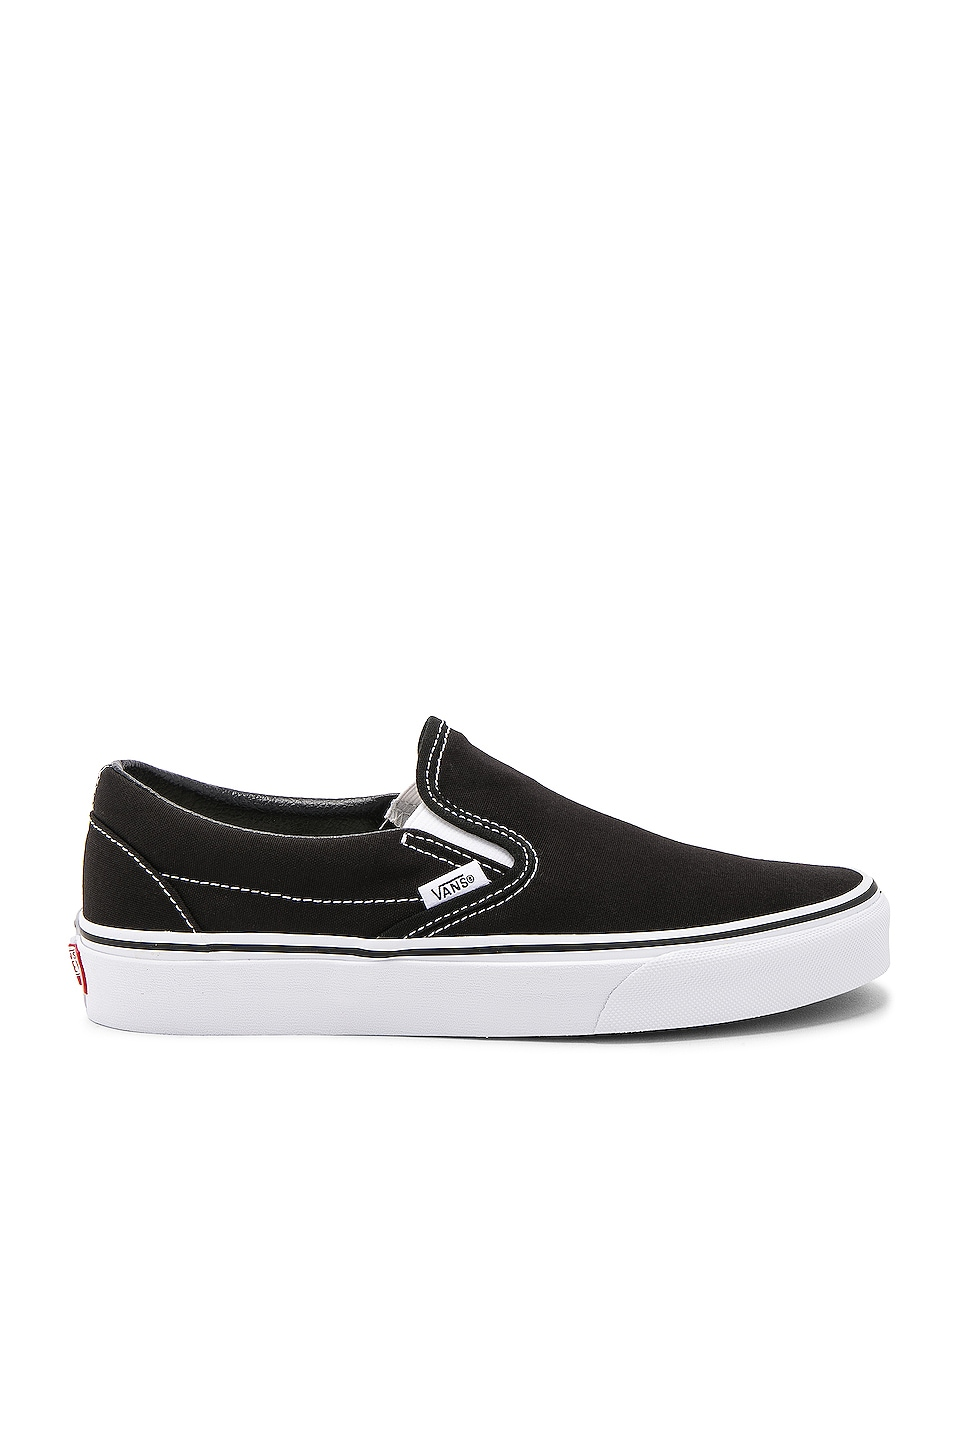 Vans Classic Slip On in Black